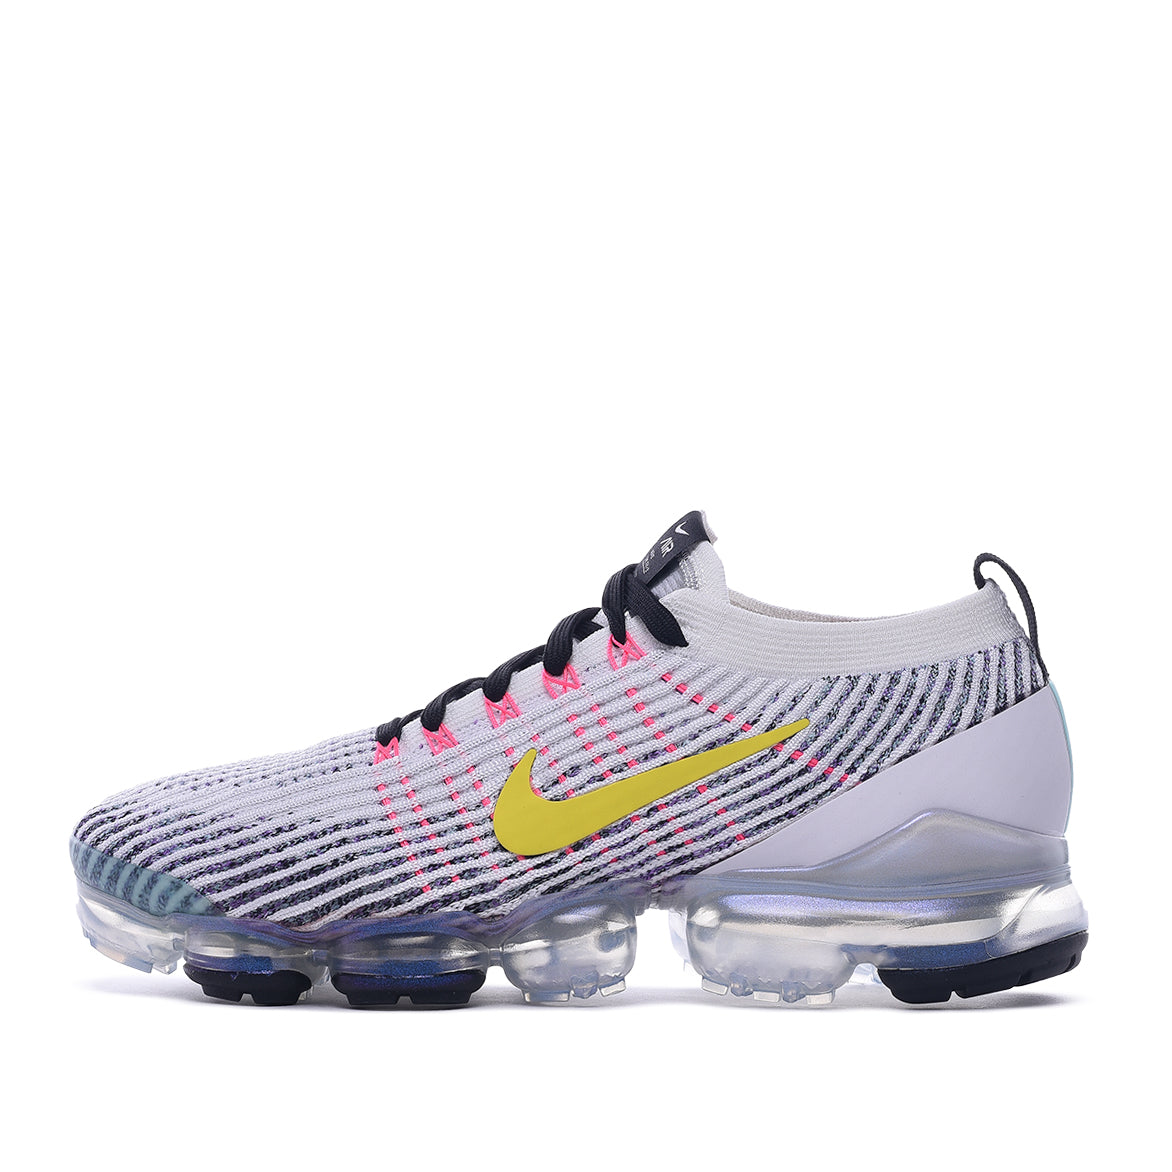 online store f4934 653be AIR VAPORMAX FLYKINT 3 - WHITE / DYNAMIC YELLOW / PINK BLAST